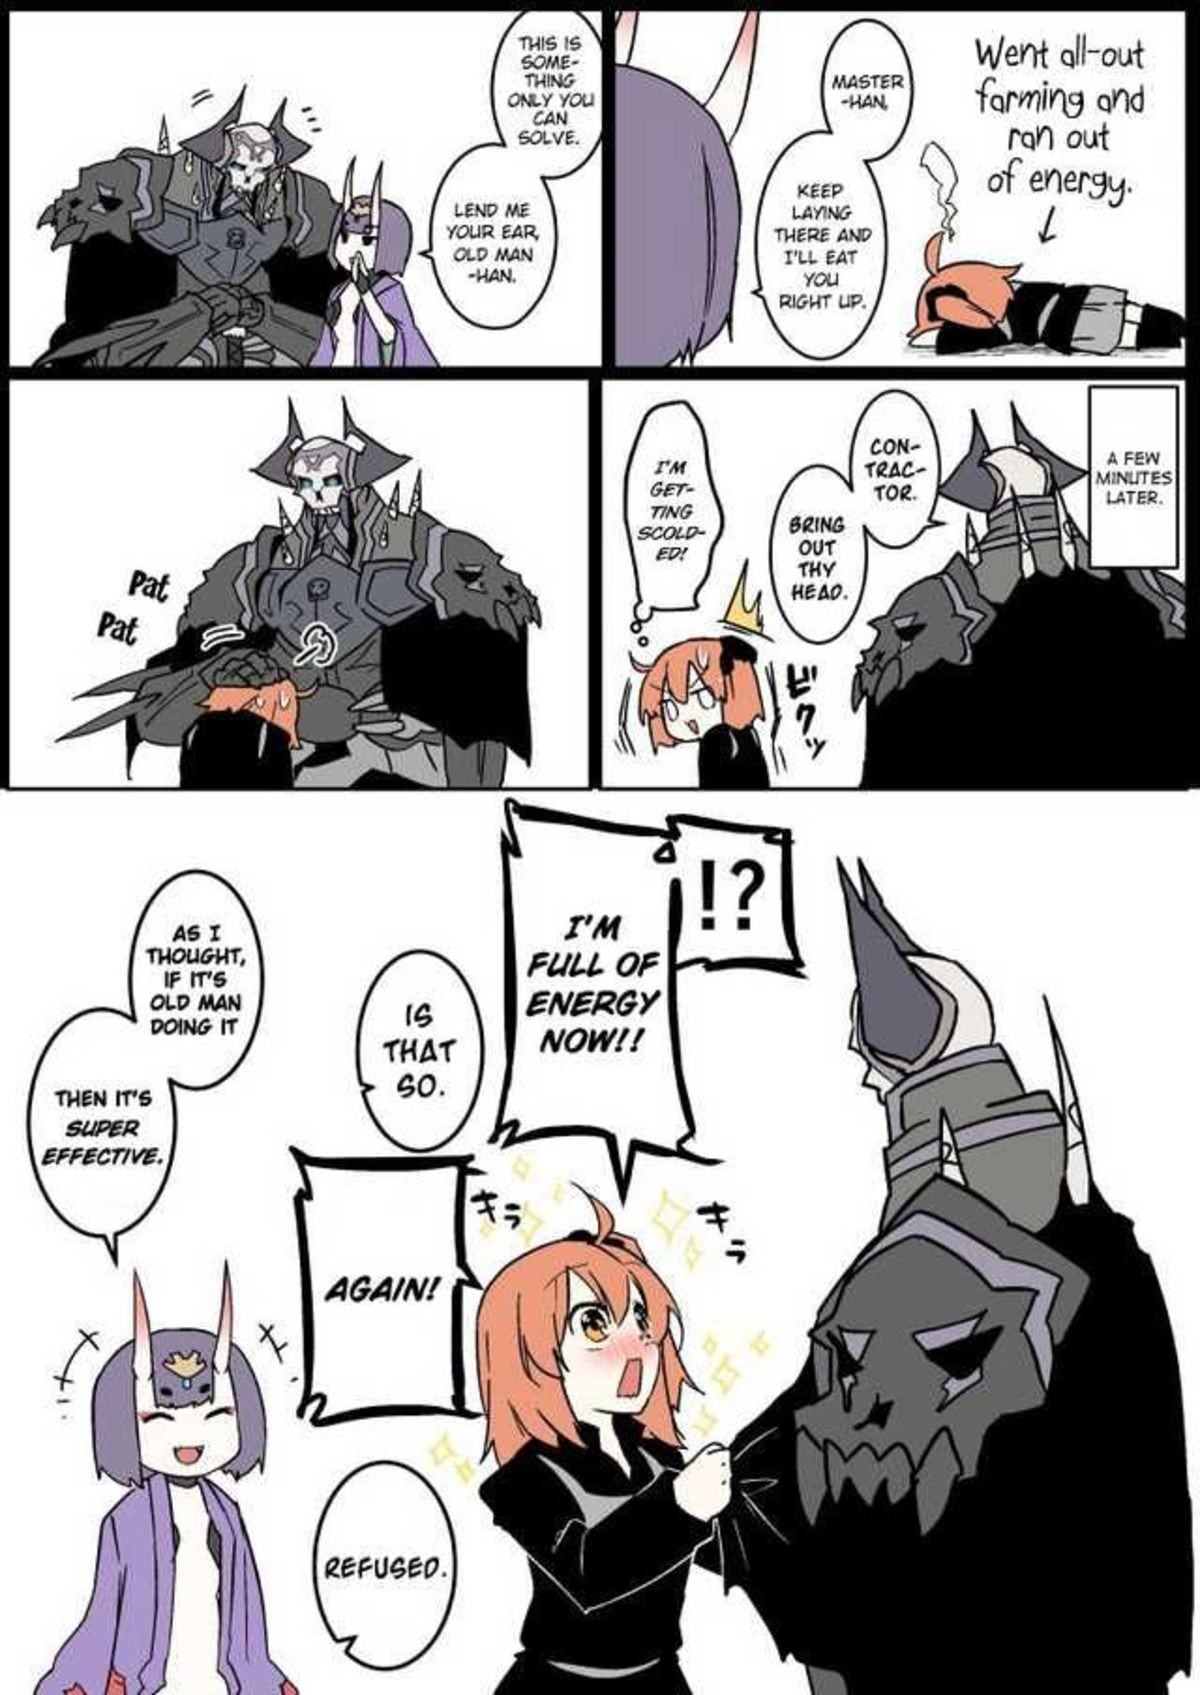 Power of Headpats. join list: WeLoveGramps (784 subs)Mention History.. Judasmercy get the in here and drop the list